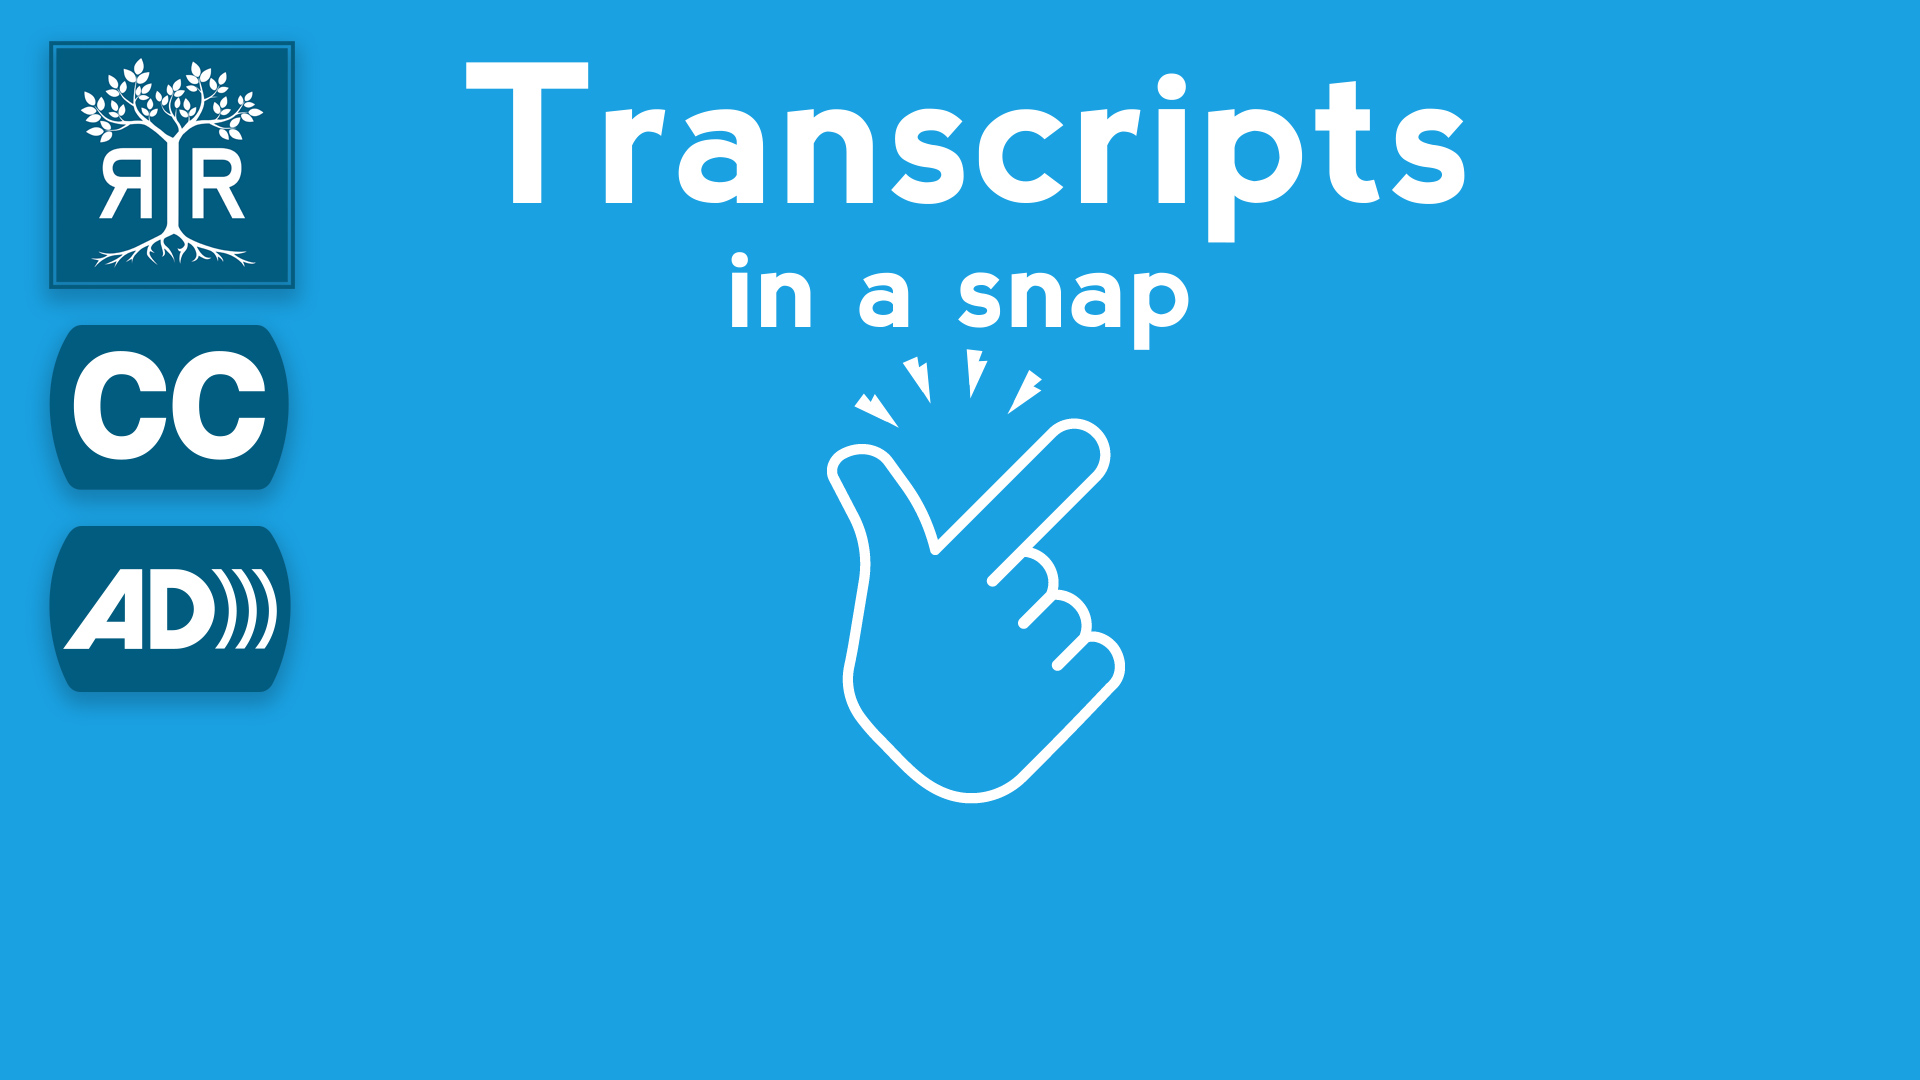 Light blue image with the illustration of a hand snapping in the center with the following text in white font above it: Transcripts in a snap